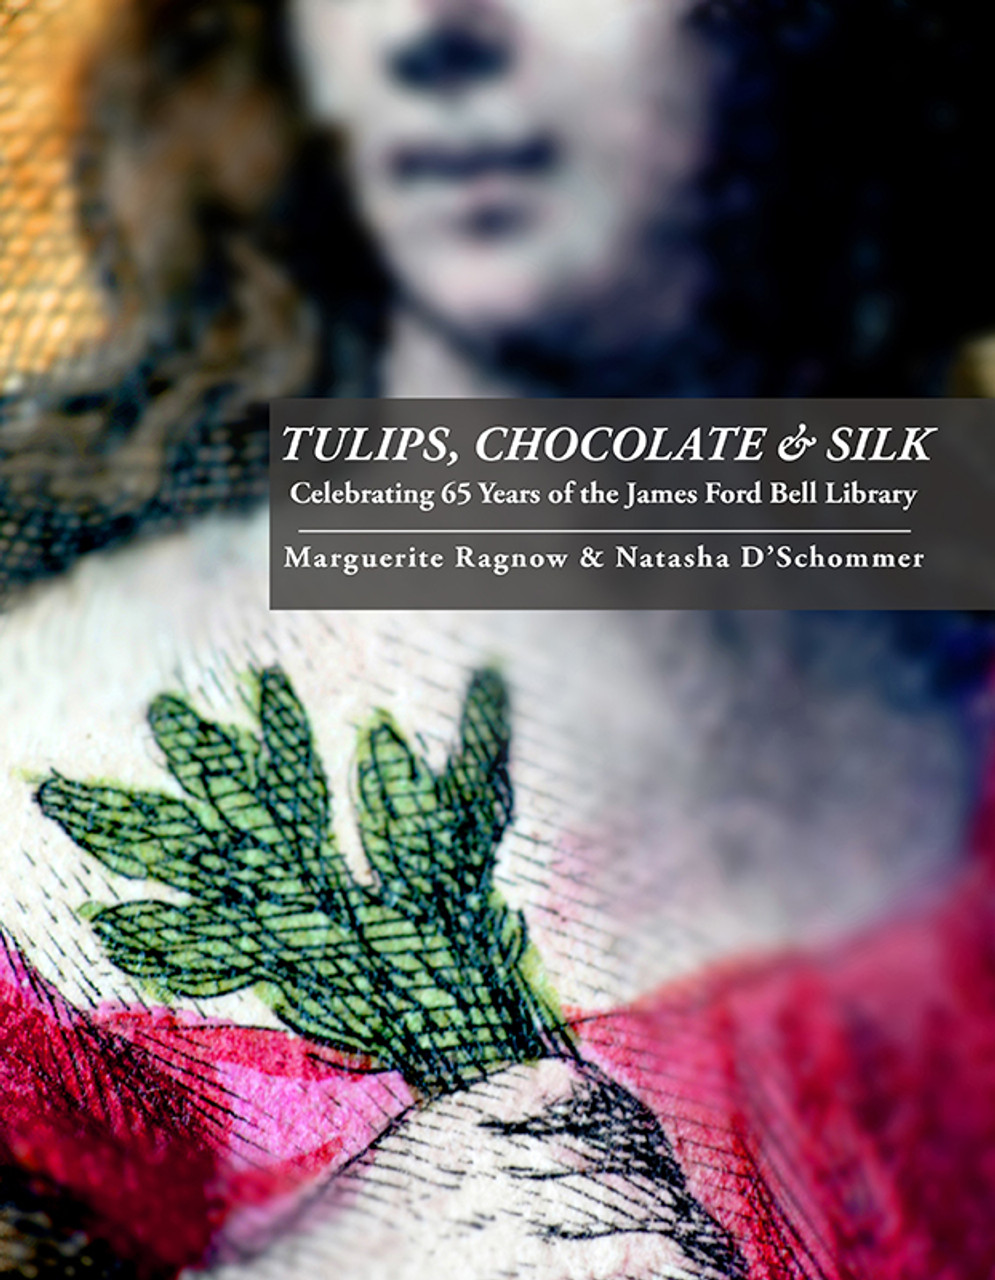 Tulips, Chocolate & Silk:  Celebrating 65 Years of the James Ford Bell Library